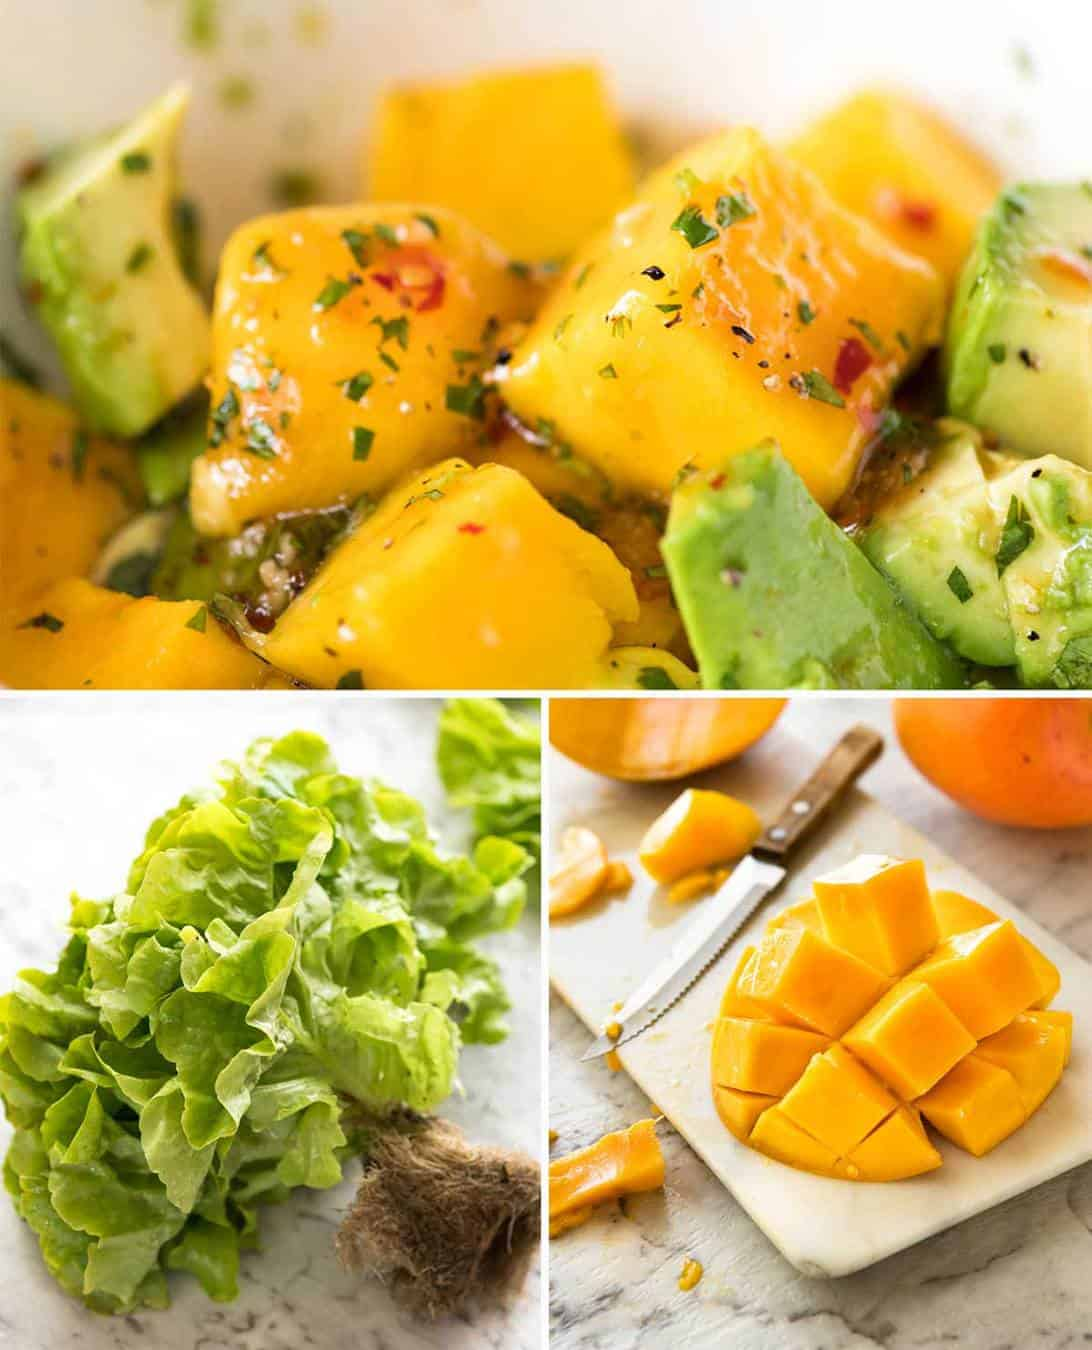 Avocado and Mango Salad www.recipetineats.com